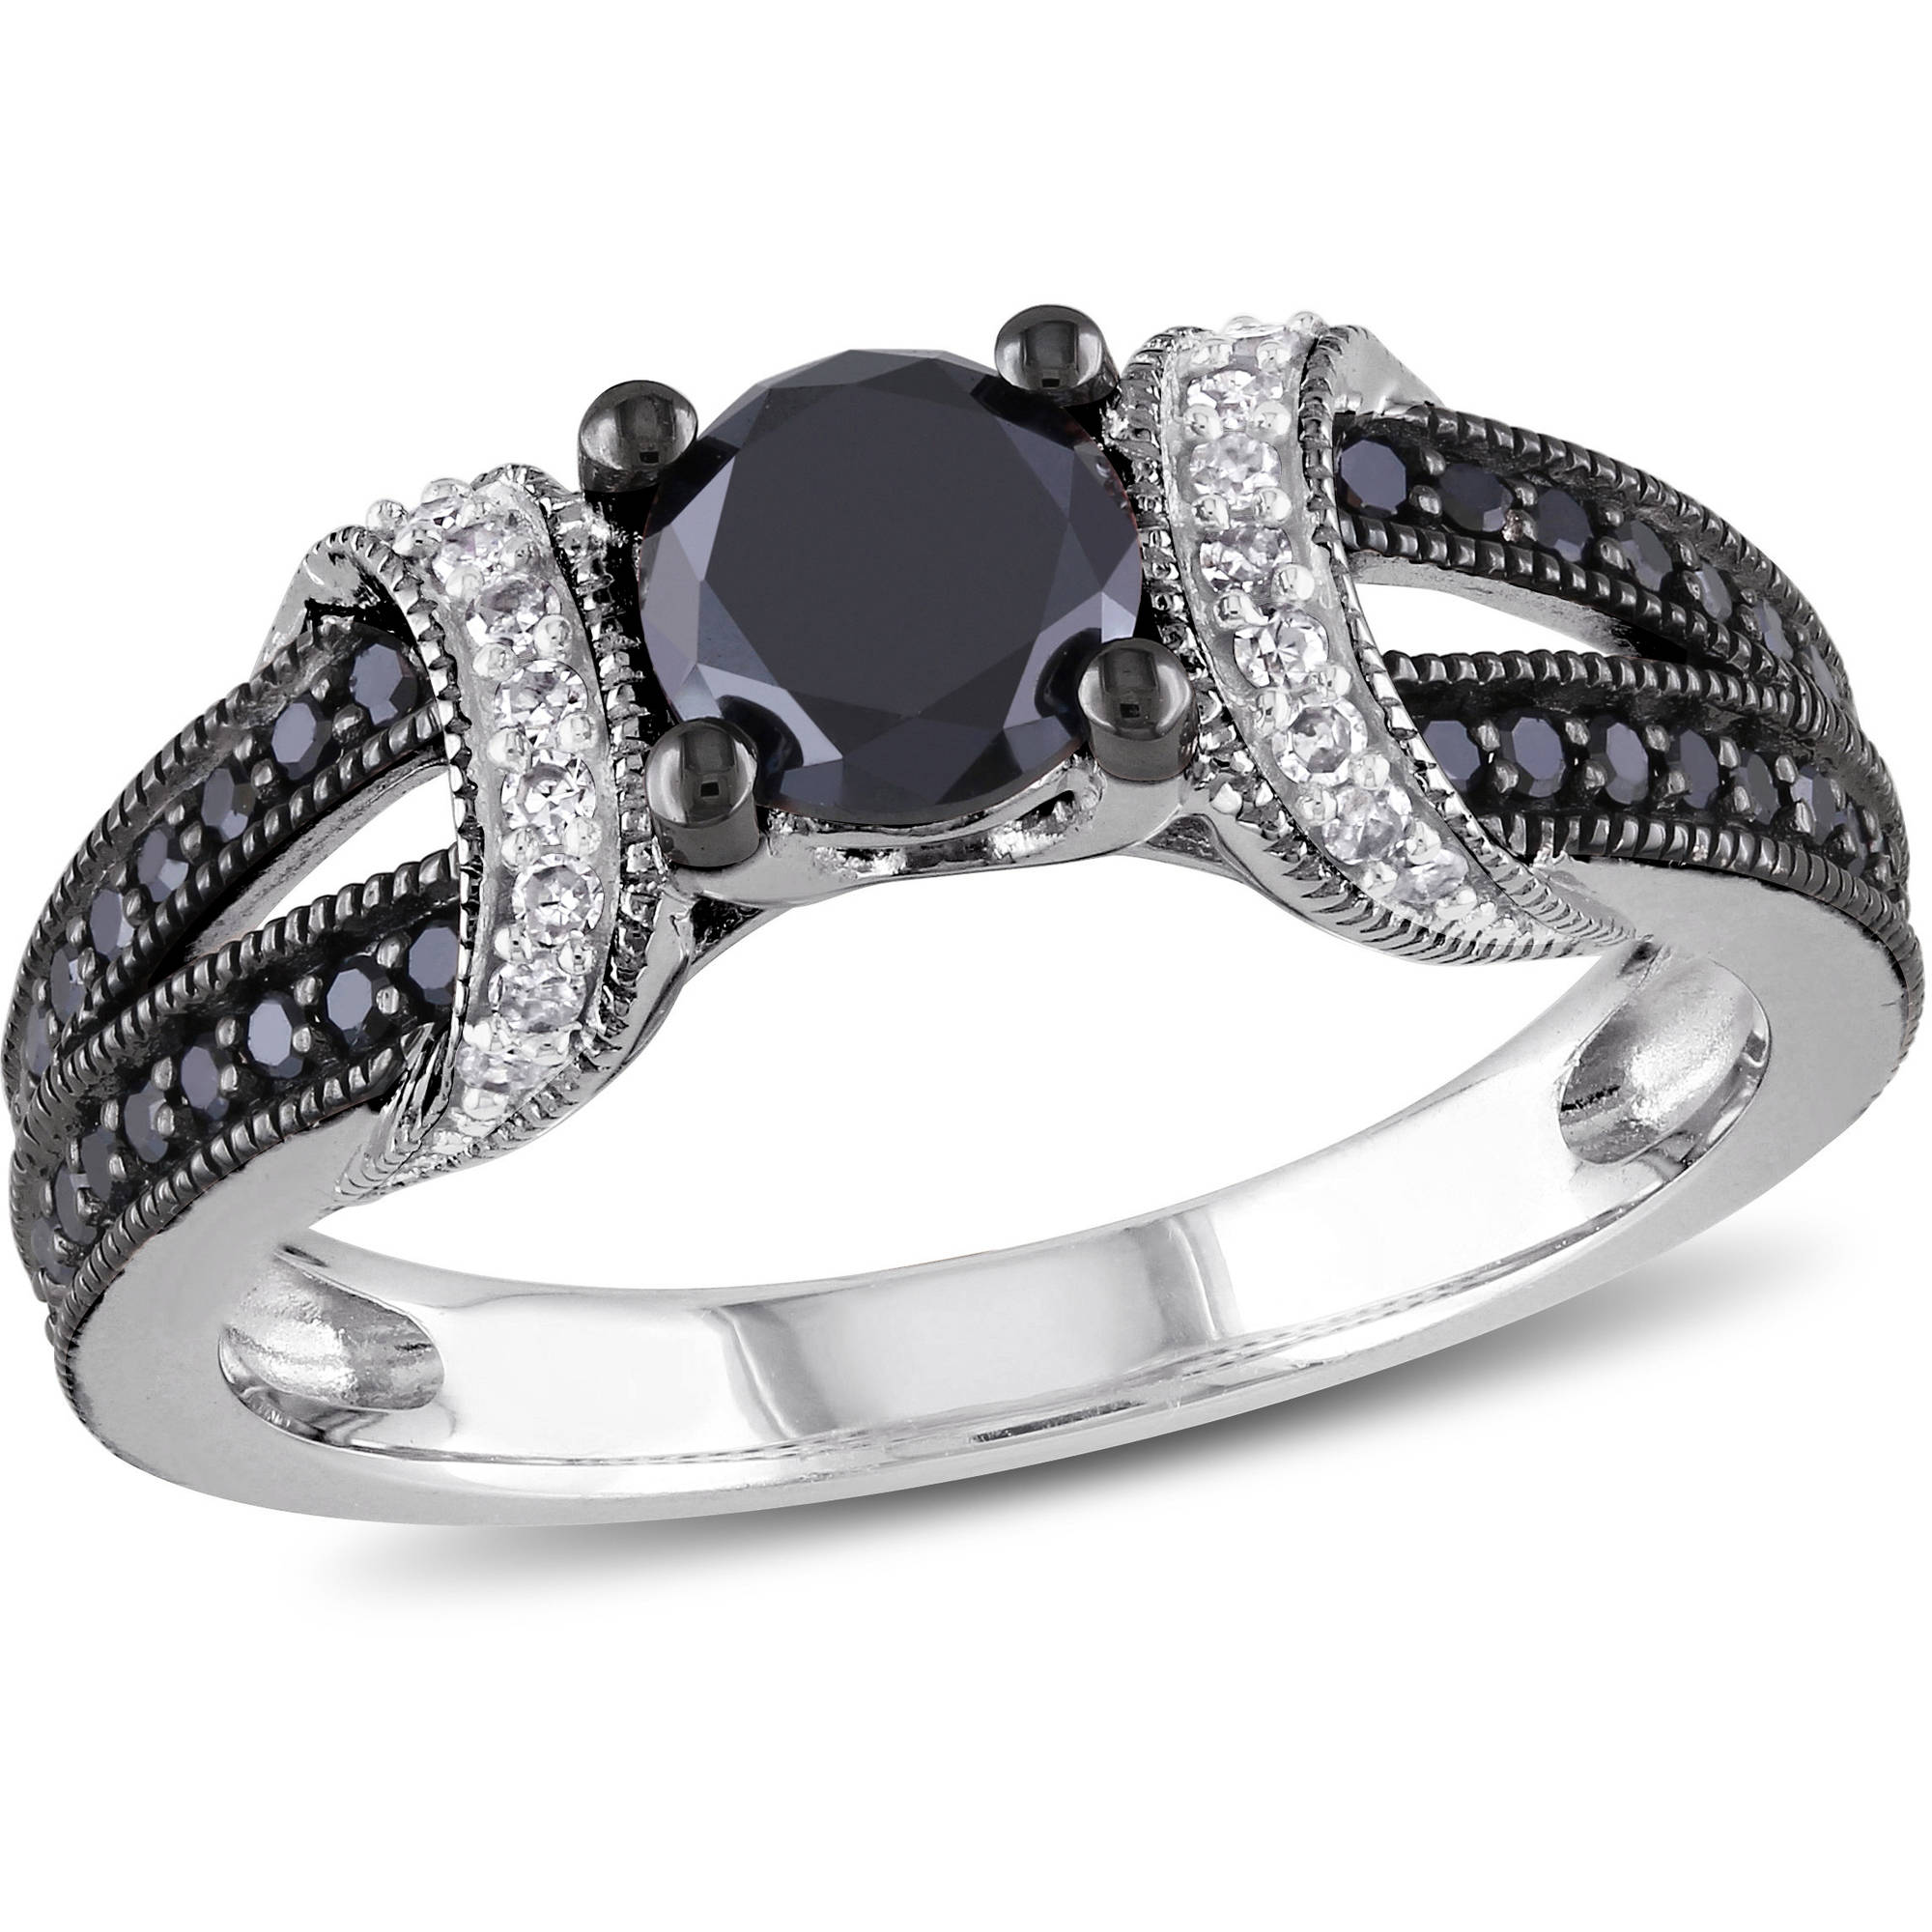 rings walmartcom - Wedding Rings Walmart